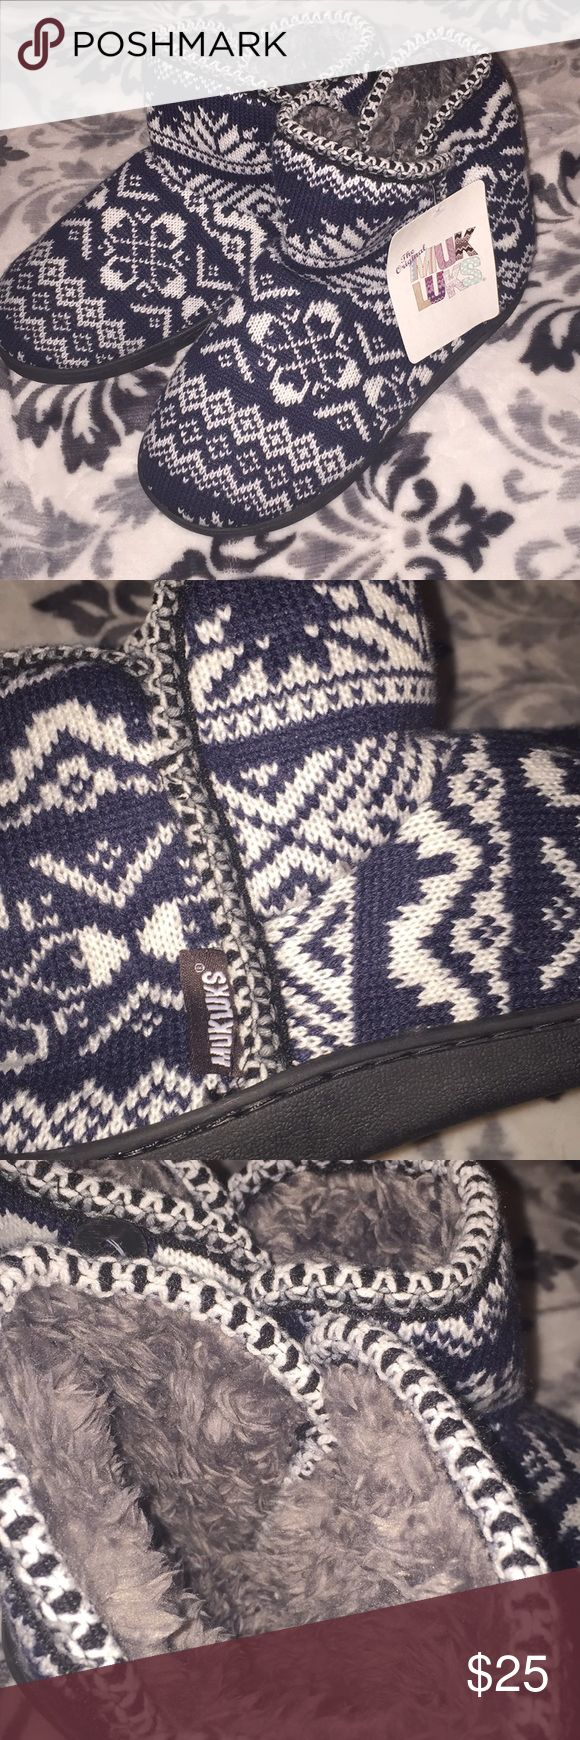 NWT Muk Luks Slipper Boots NWT. Super Warm and Comfy! Blue and White Print. Grey Furry lining. Black Rubber Sole.  Size Medium 7-8.  Reasonable Offers Accepted. Muk Luks Shoes Slippers